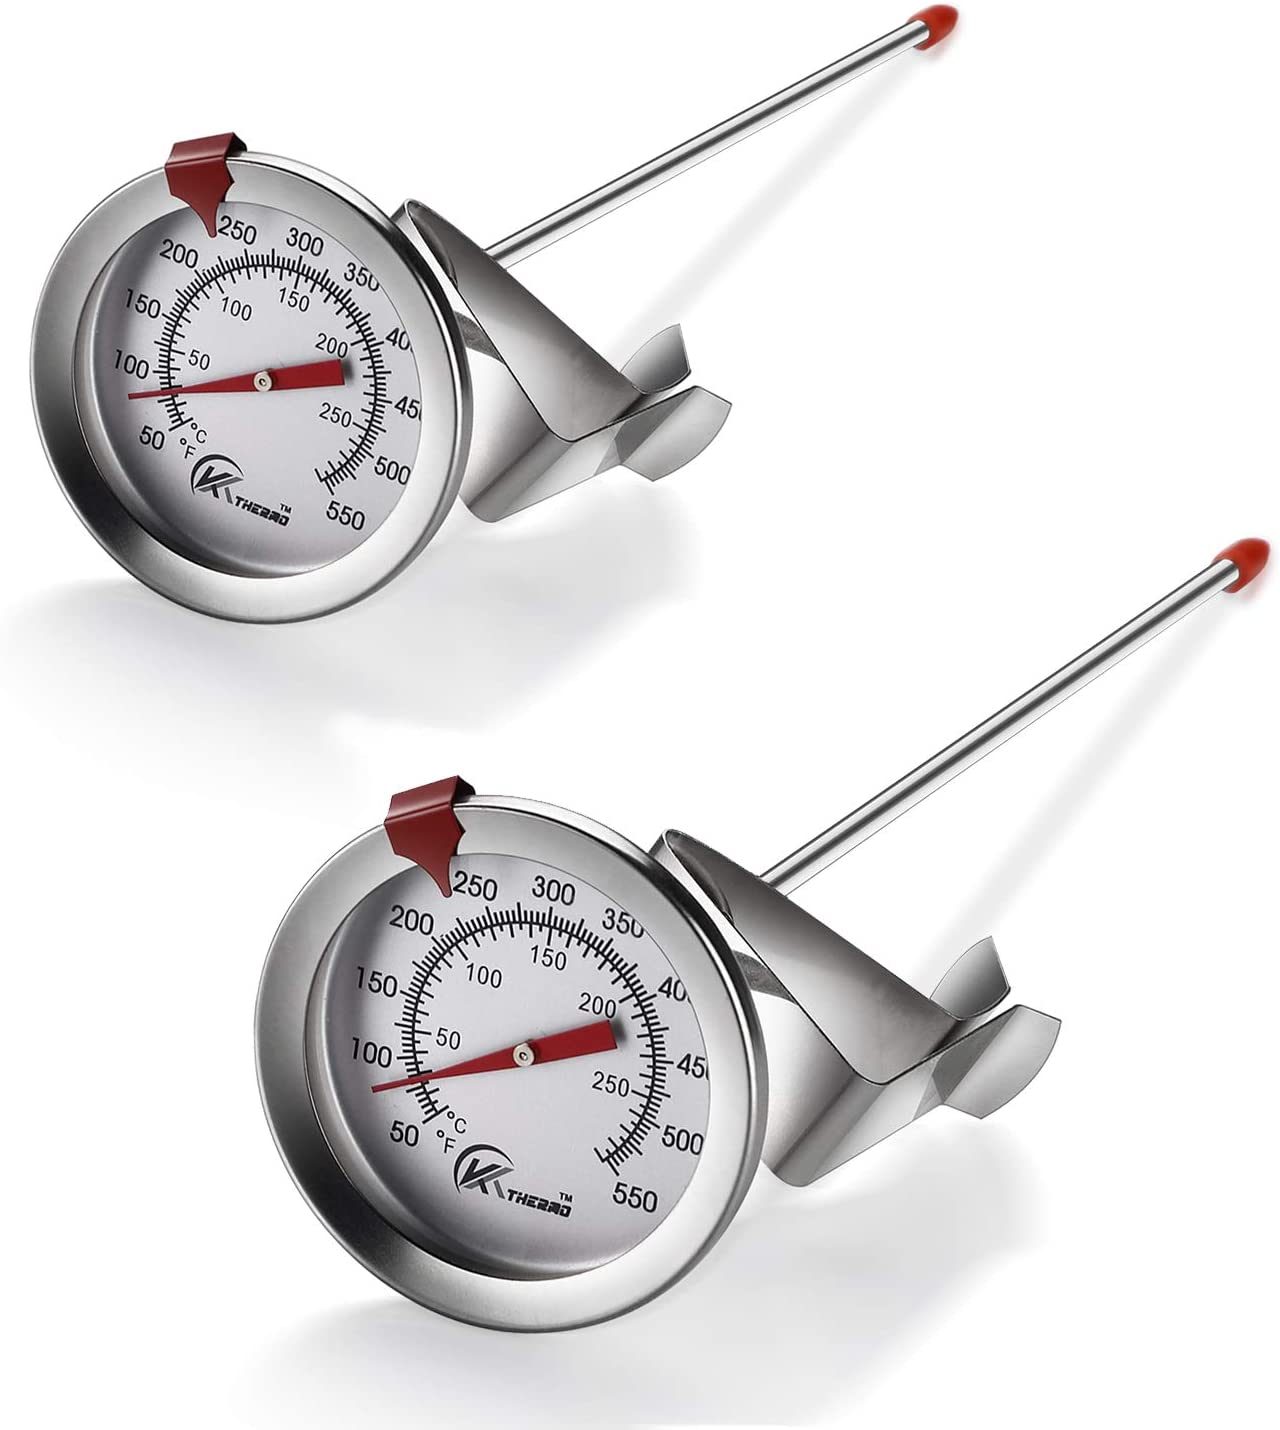 KT THERMO Deep Fry Thermometer With Instant Read,Dial Thermometer(2-PACK),6